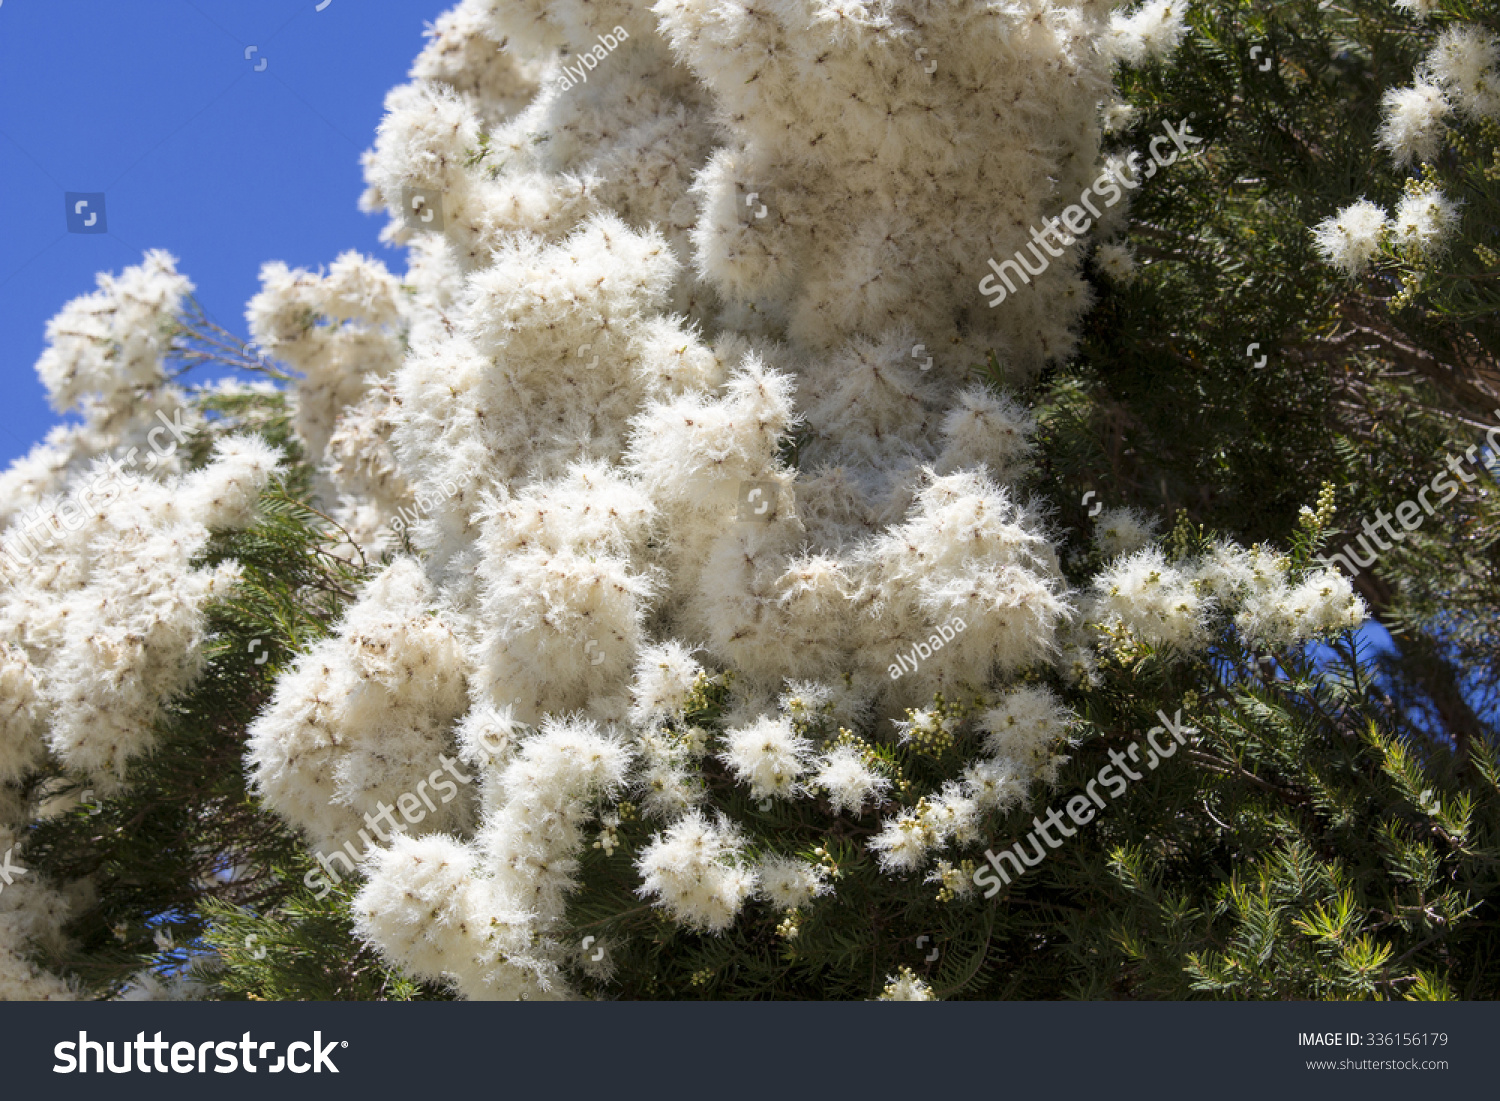 Royalty Free Masses Of White Fluffy Flowers Of 336156179 Stock